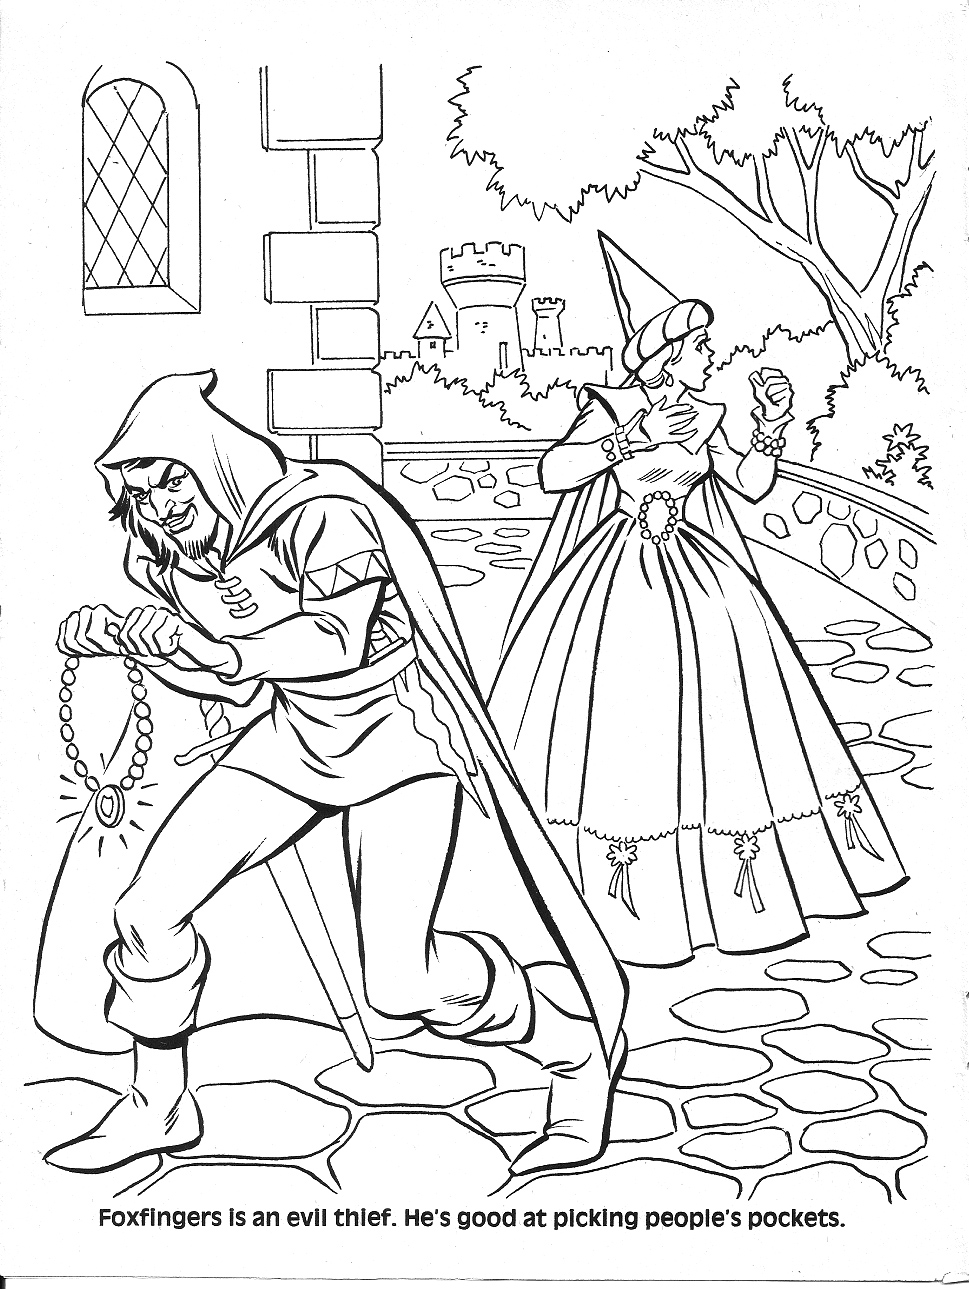 dungeons and dragons coloring pages - photo#25